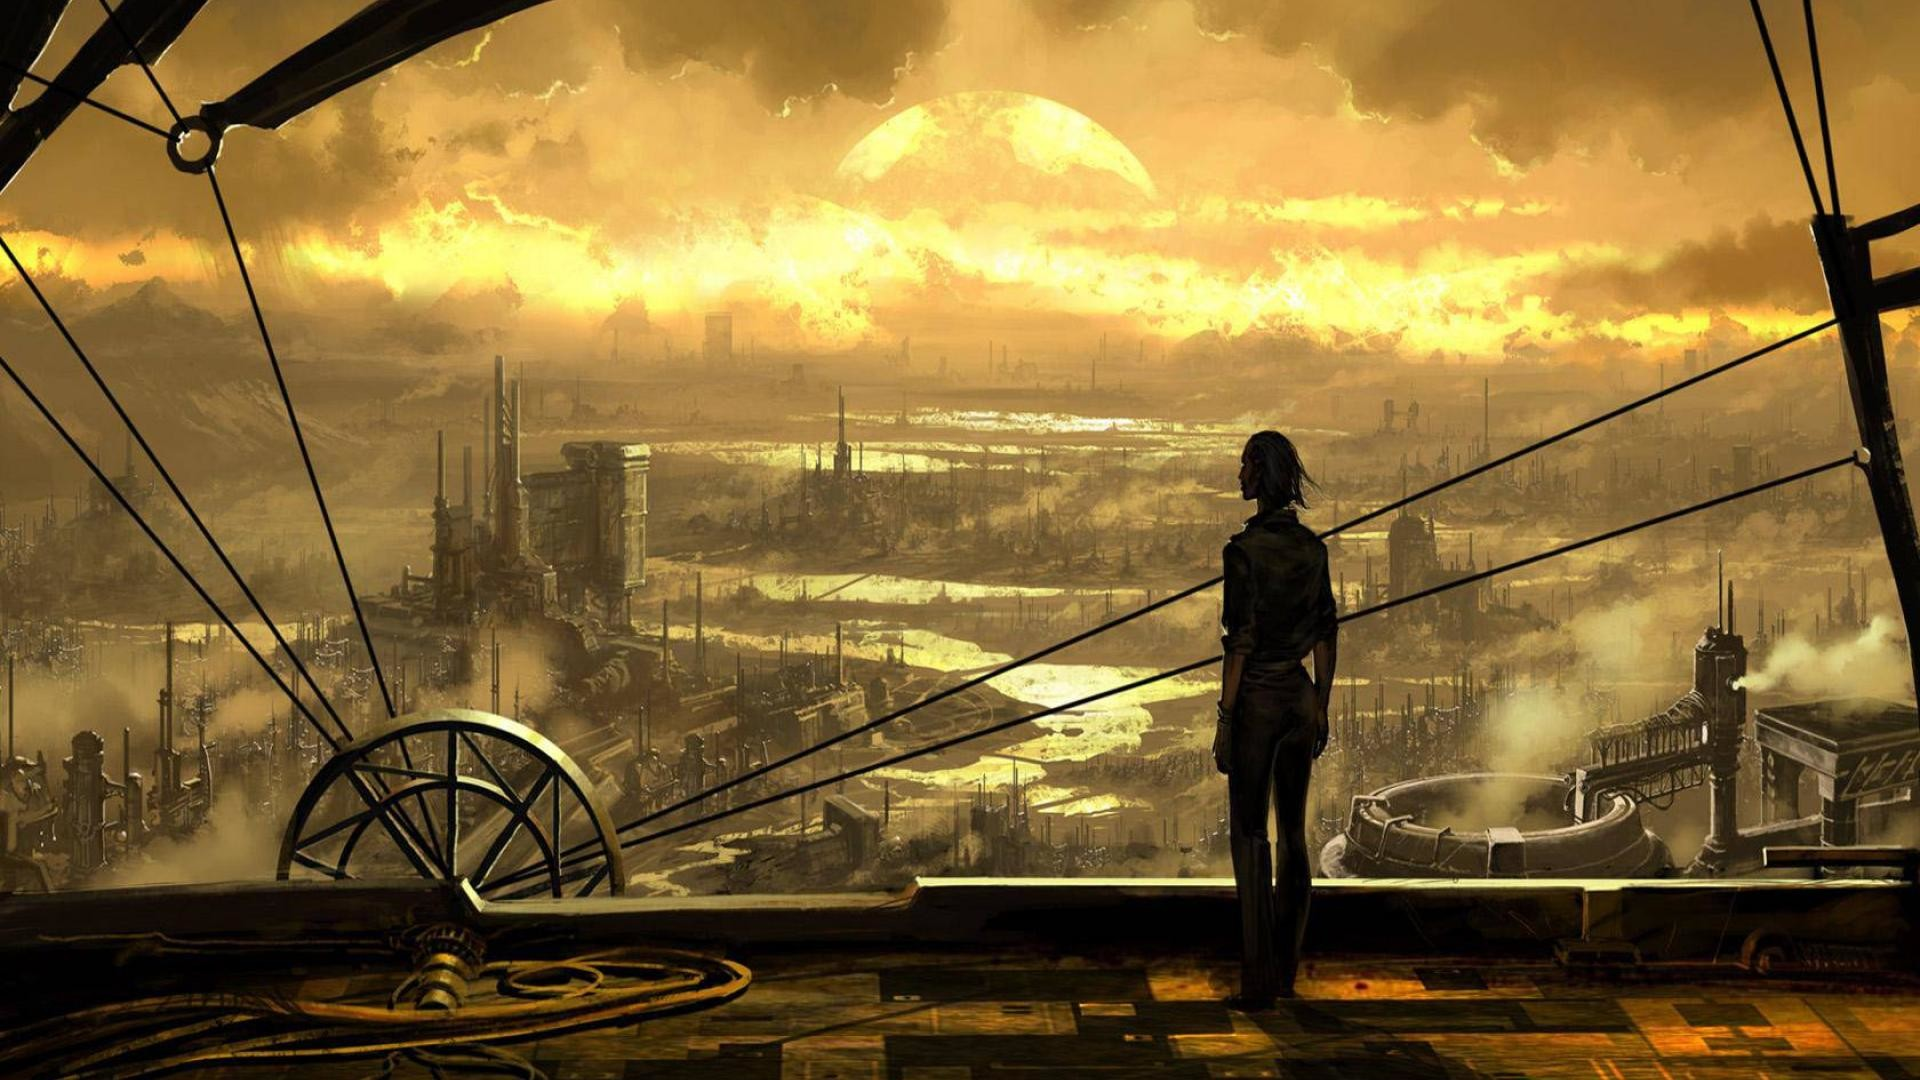 Steampunk HD Wallpapers and Backgrounds | HD Wallpapers | Pinterest | Steampunk  wallpaper, Steampunk and Wallpaper